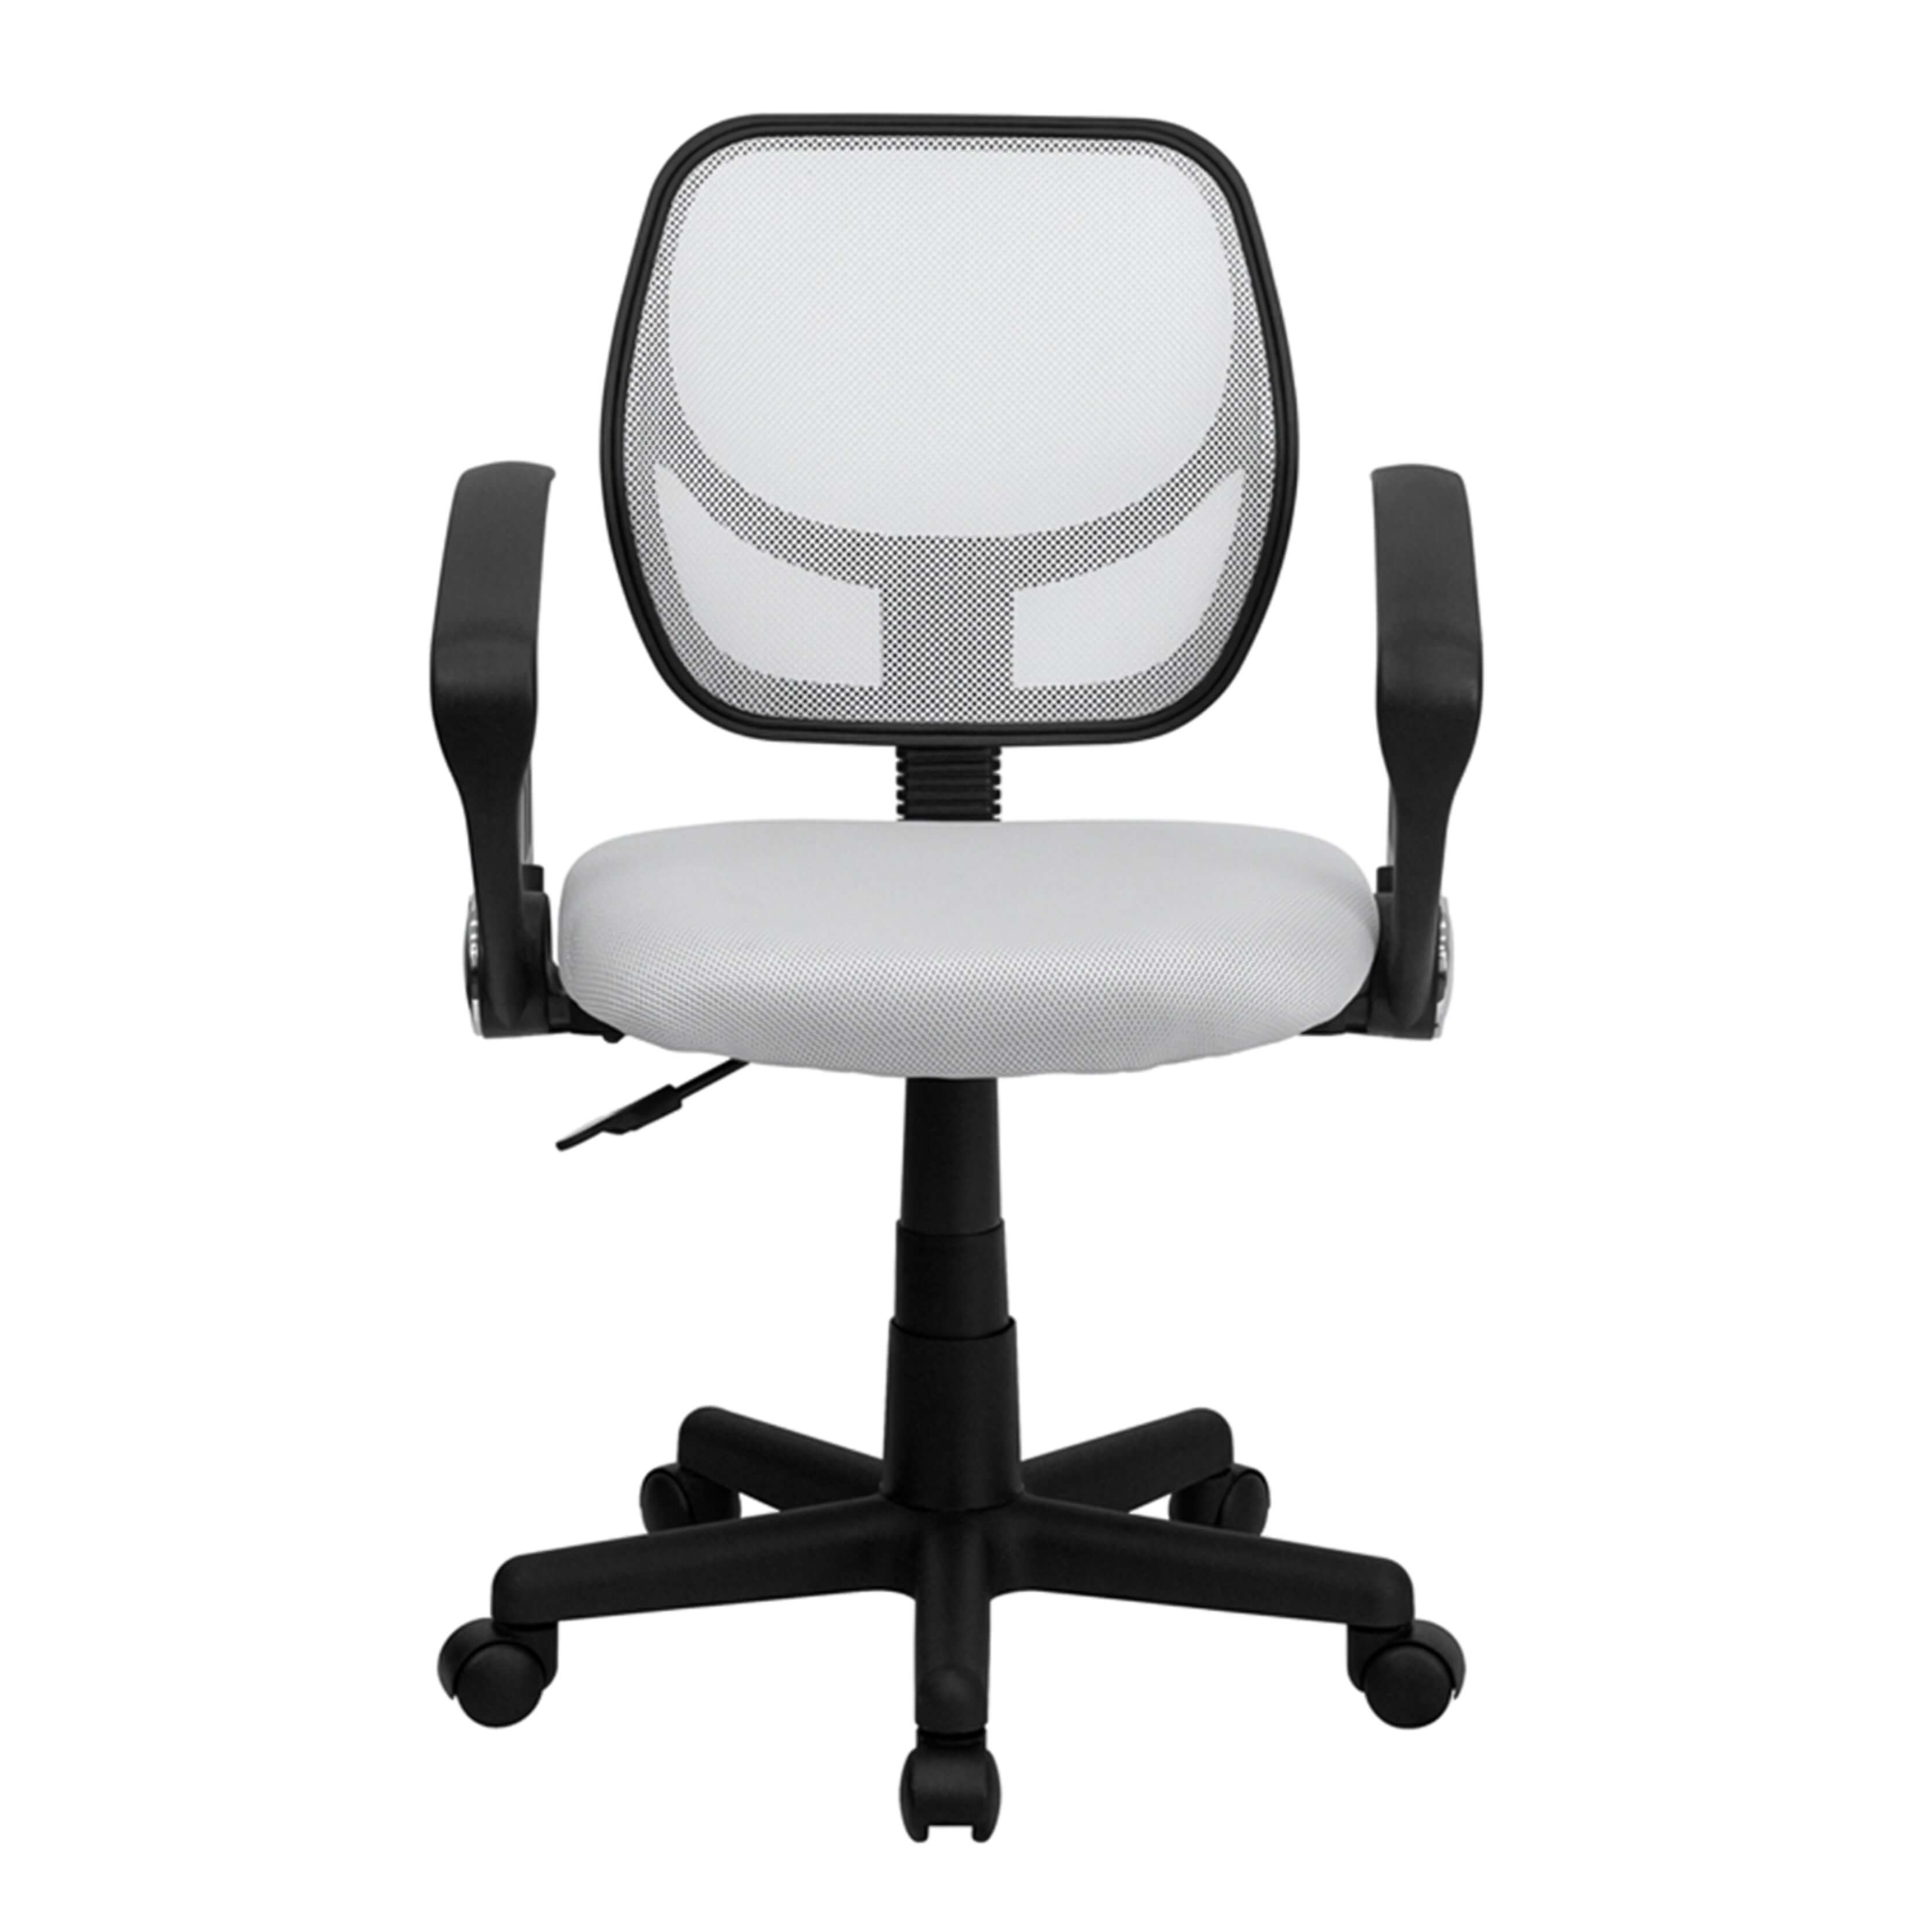 Colorful desk chairs CUB WA 3074 WHT A GG FLA